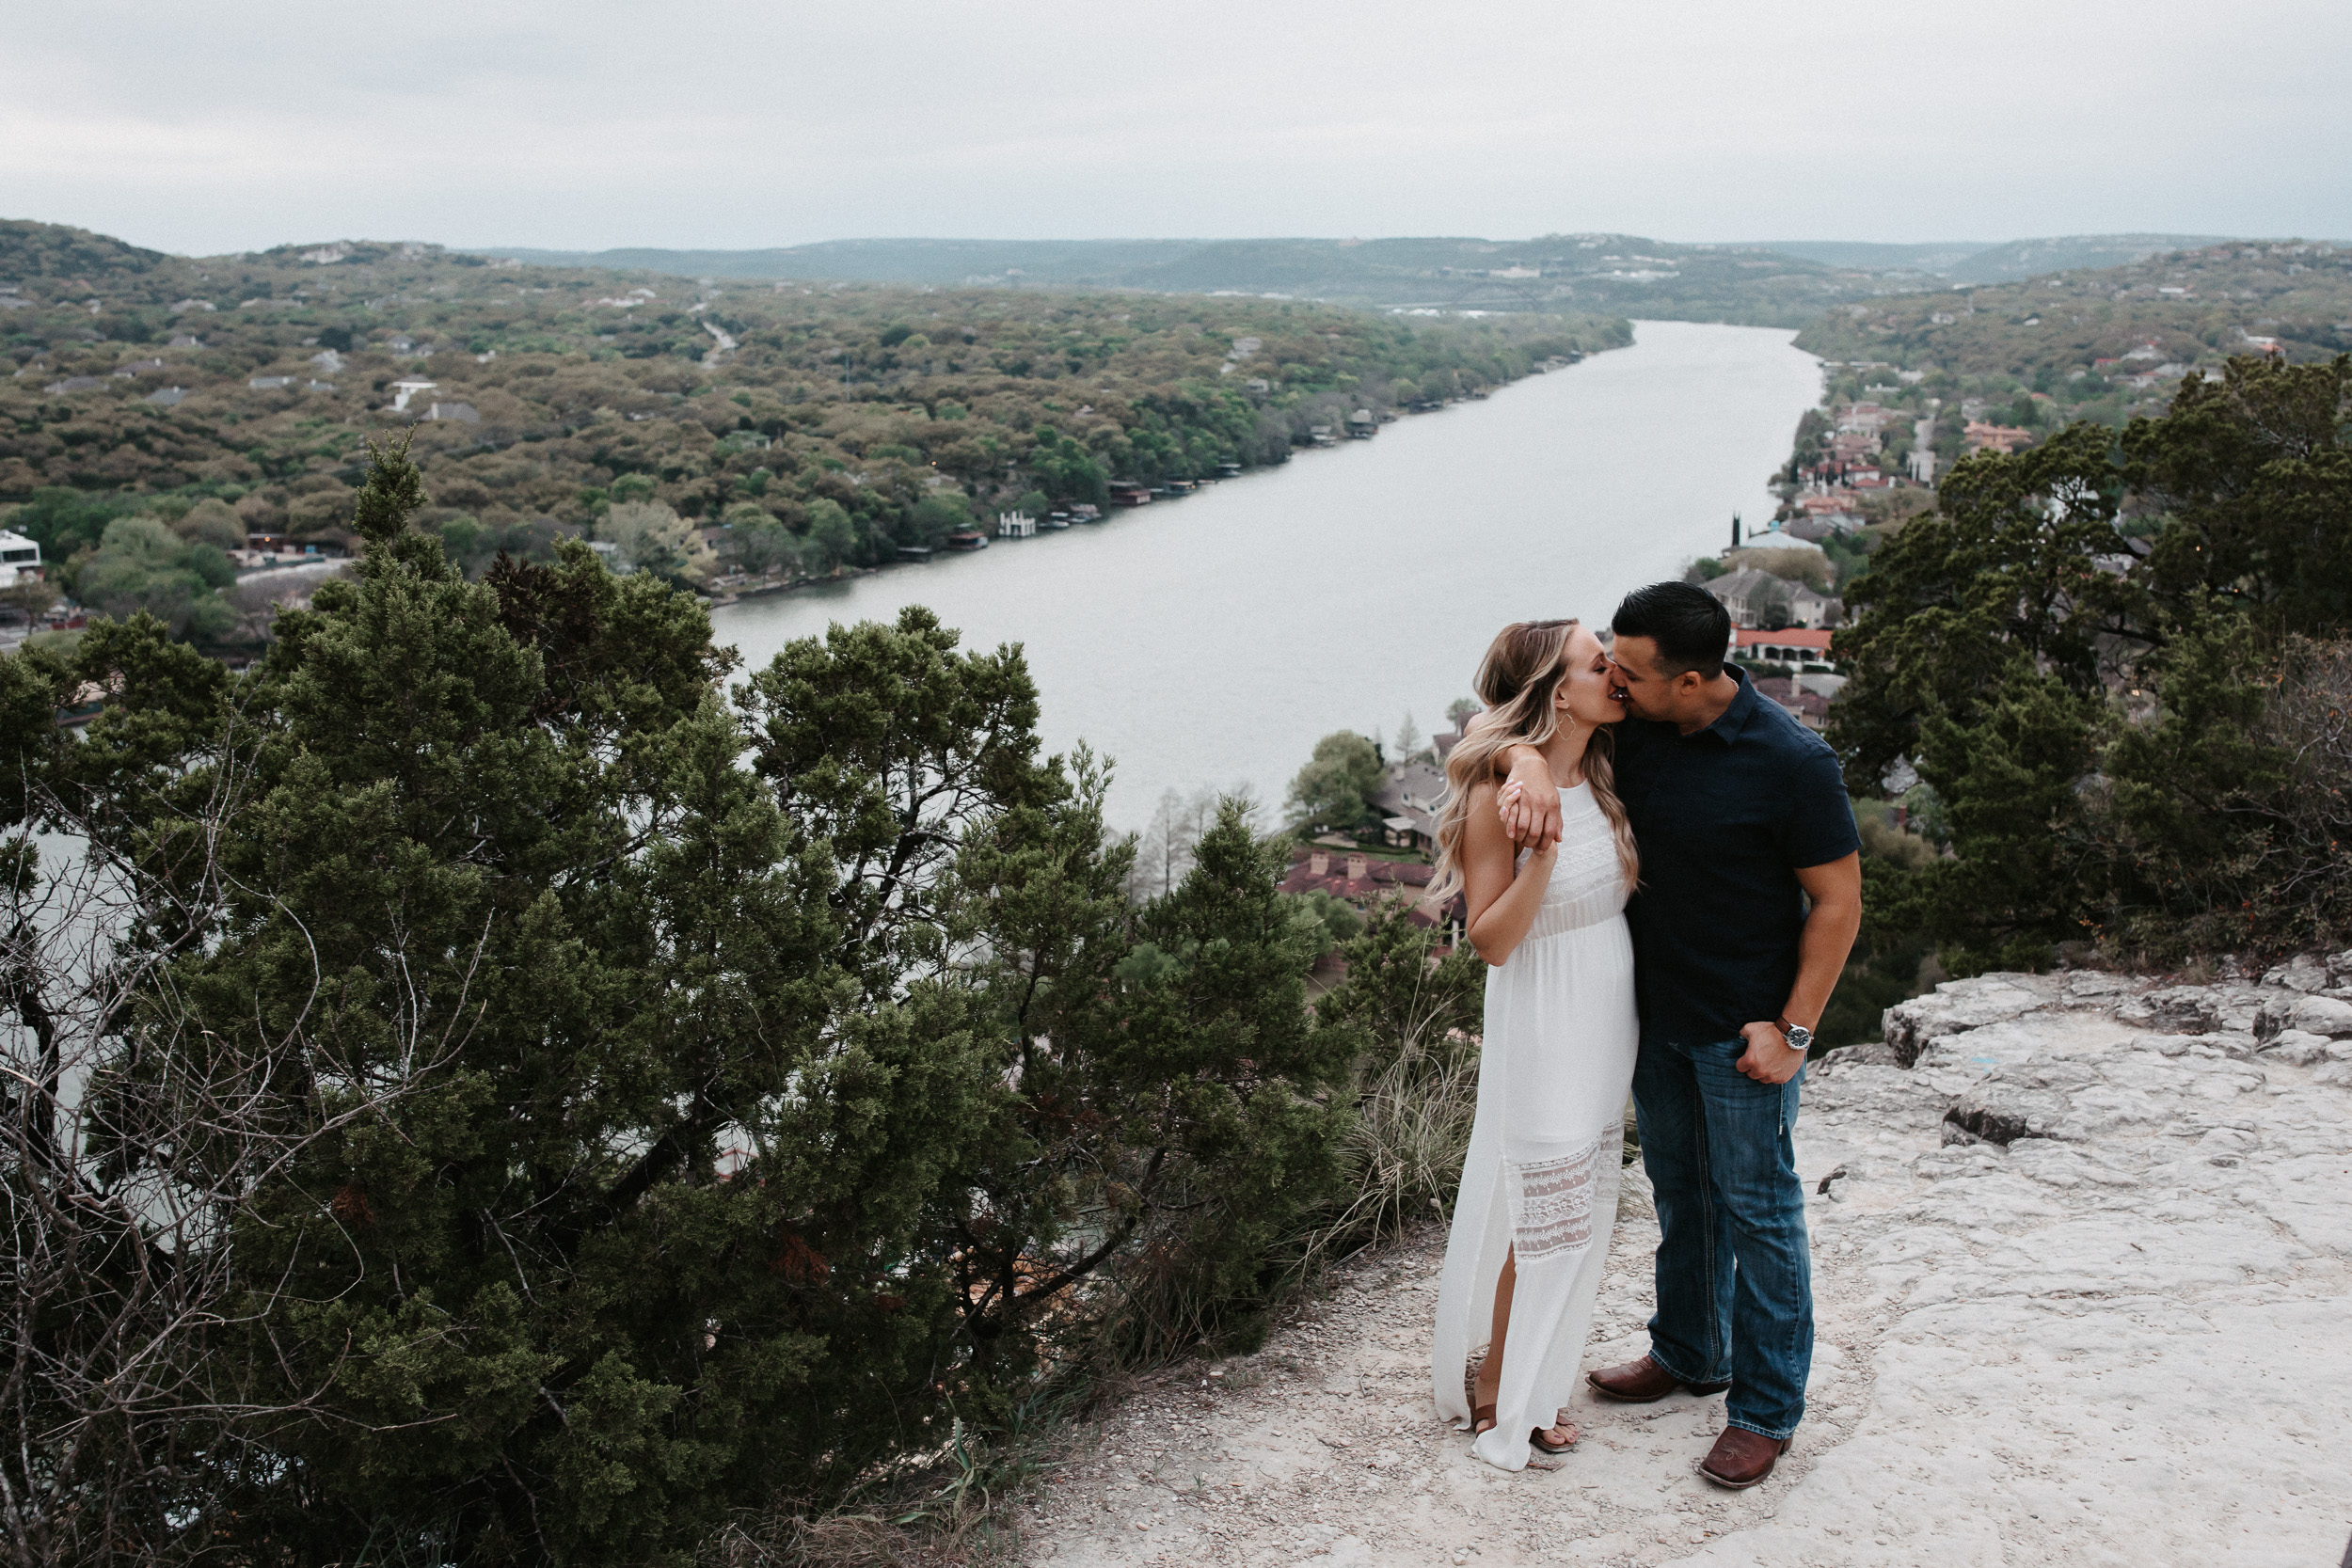 liz-stephen-engagement-mount-bonnell-austin-texas-020.jpg